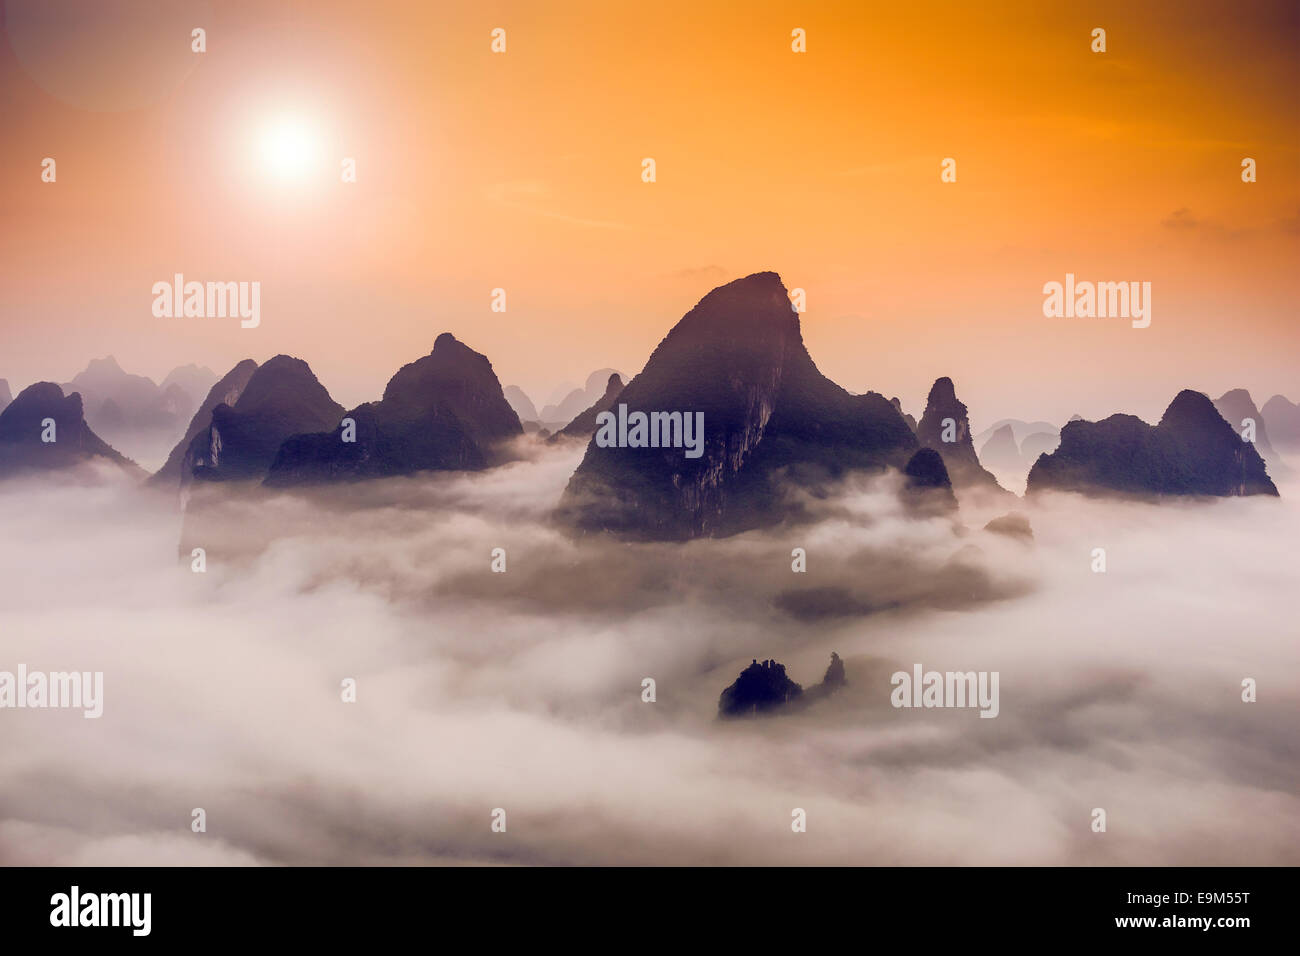 Montagnes karstiques de Xingping, Chine. Photo Stock